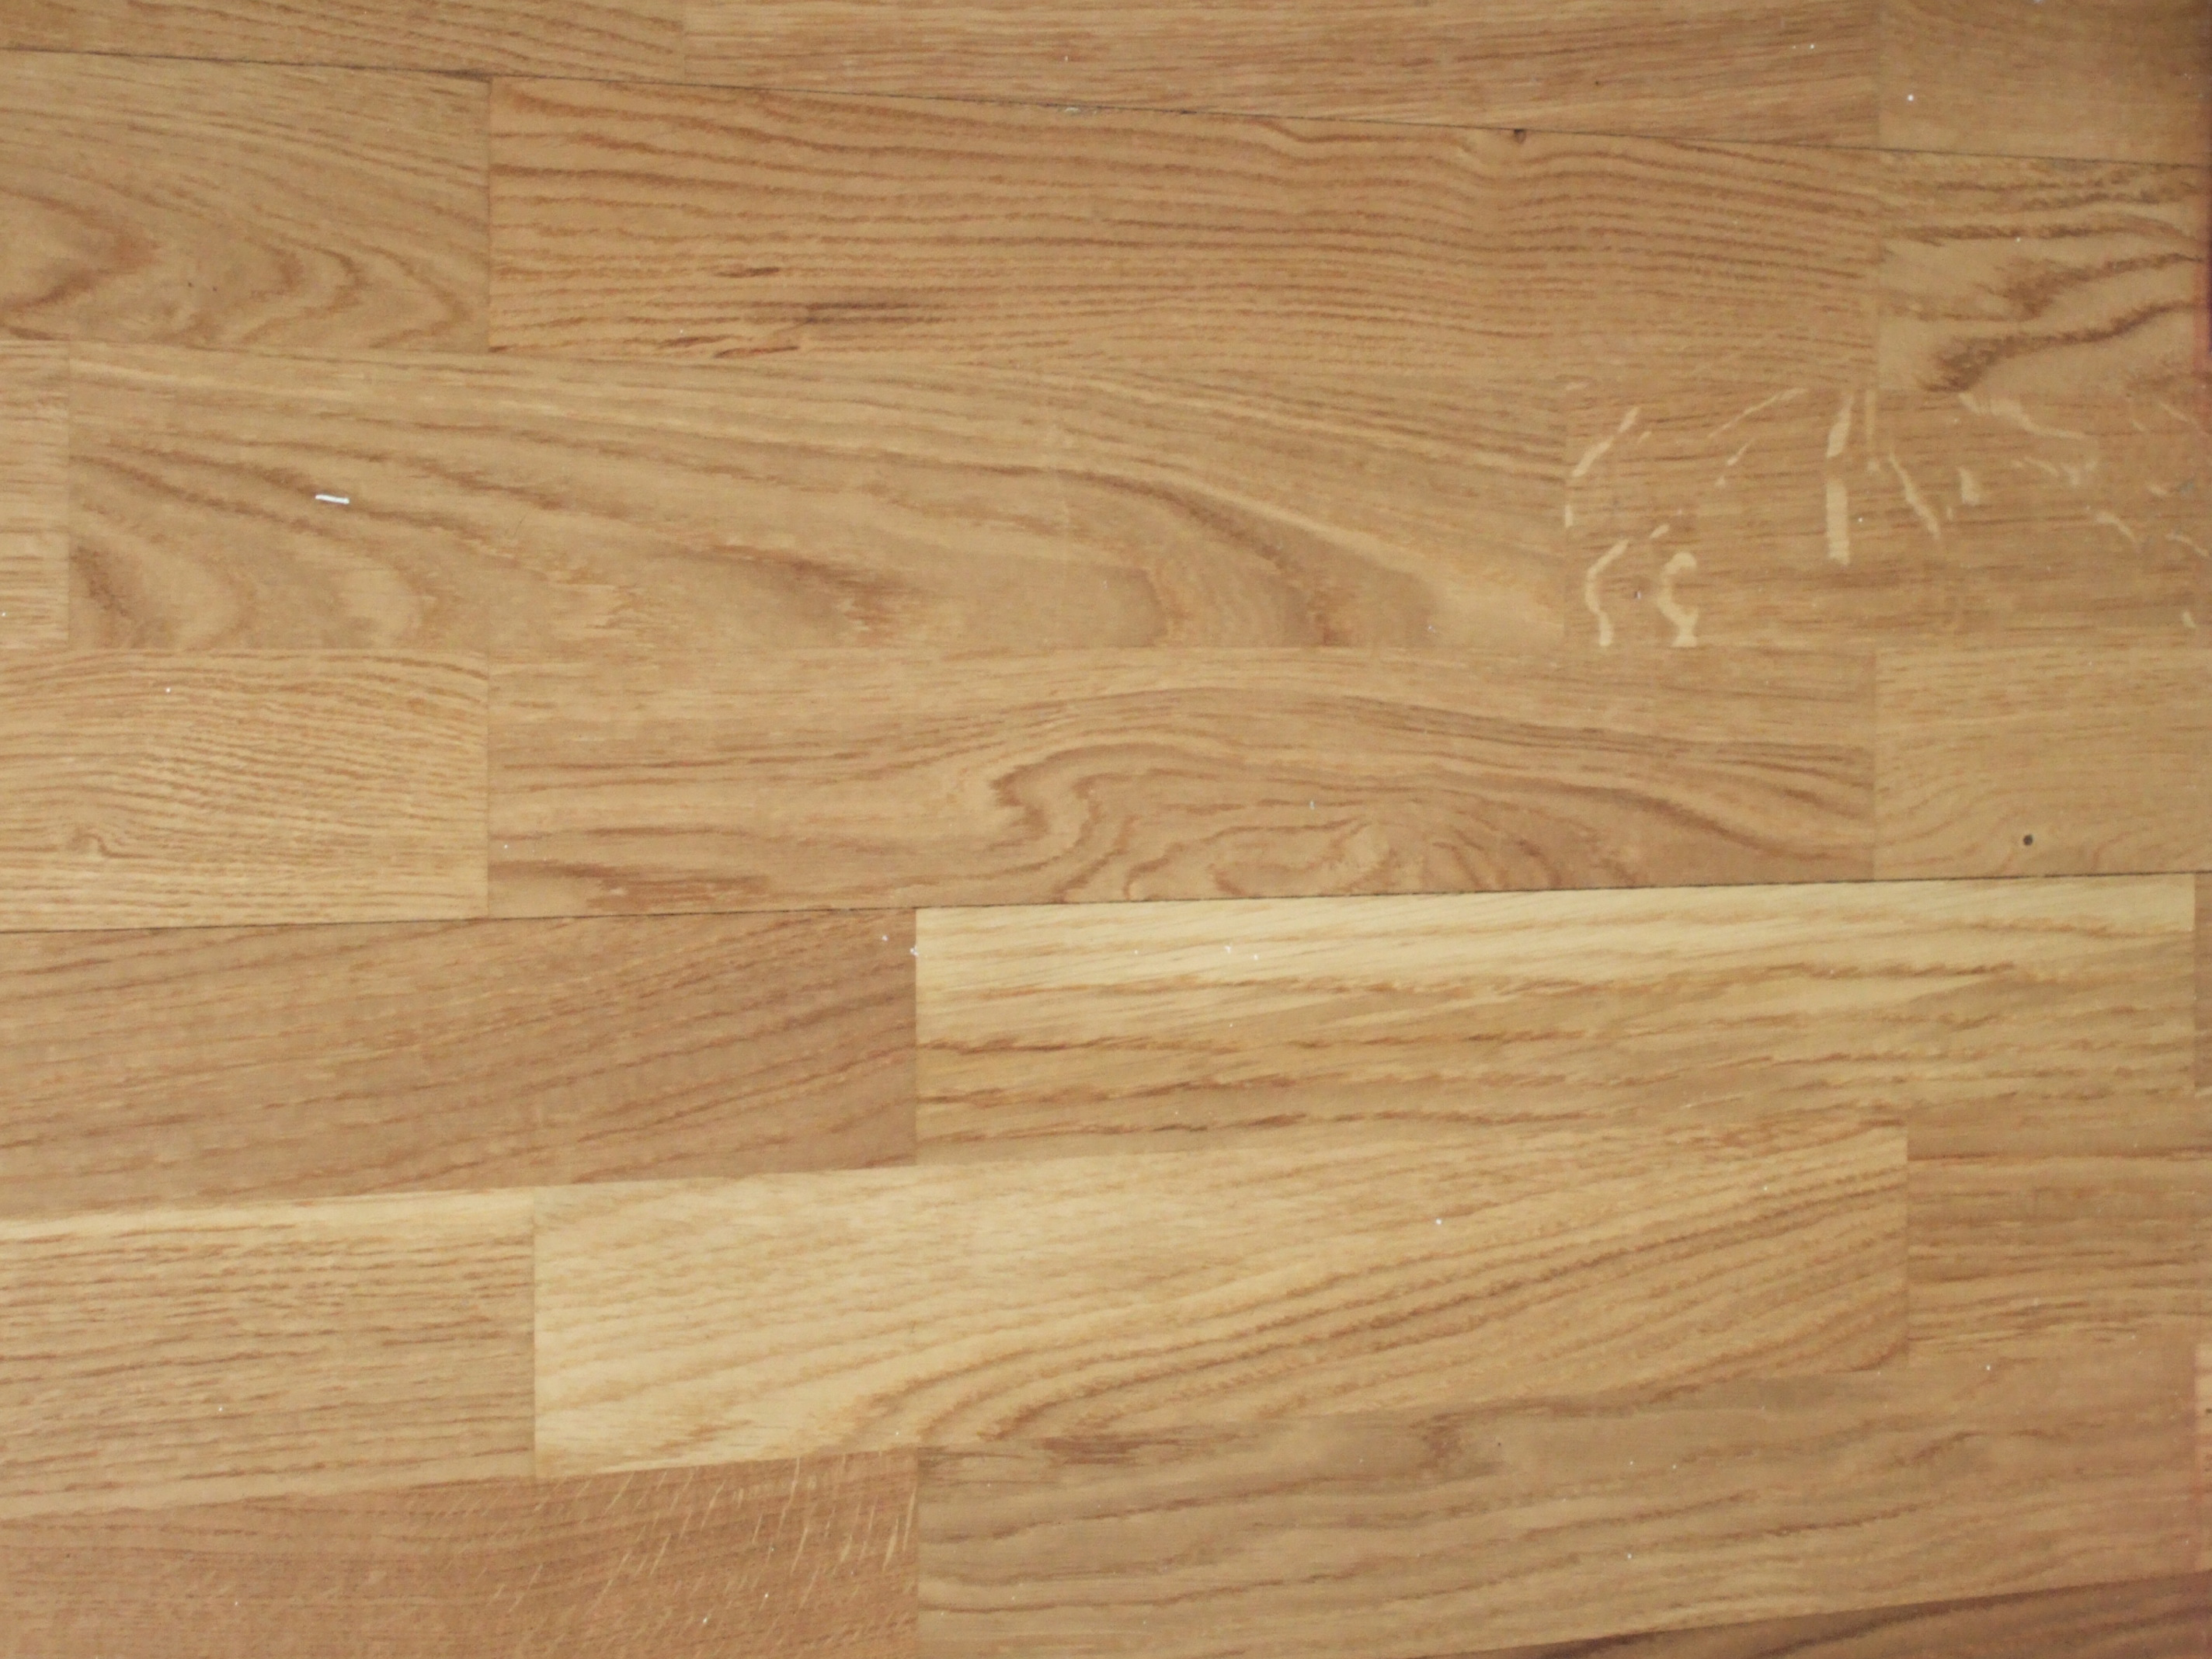 Image After Textures Tabus Woods Wood Texture Fine Floor Parquet